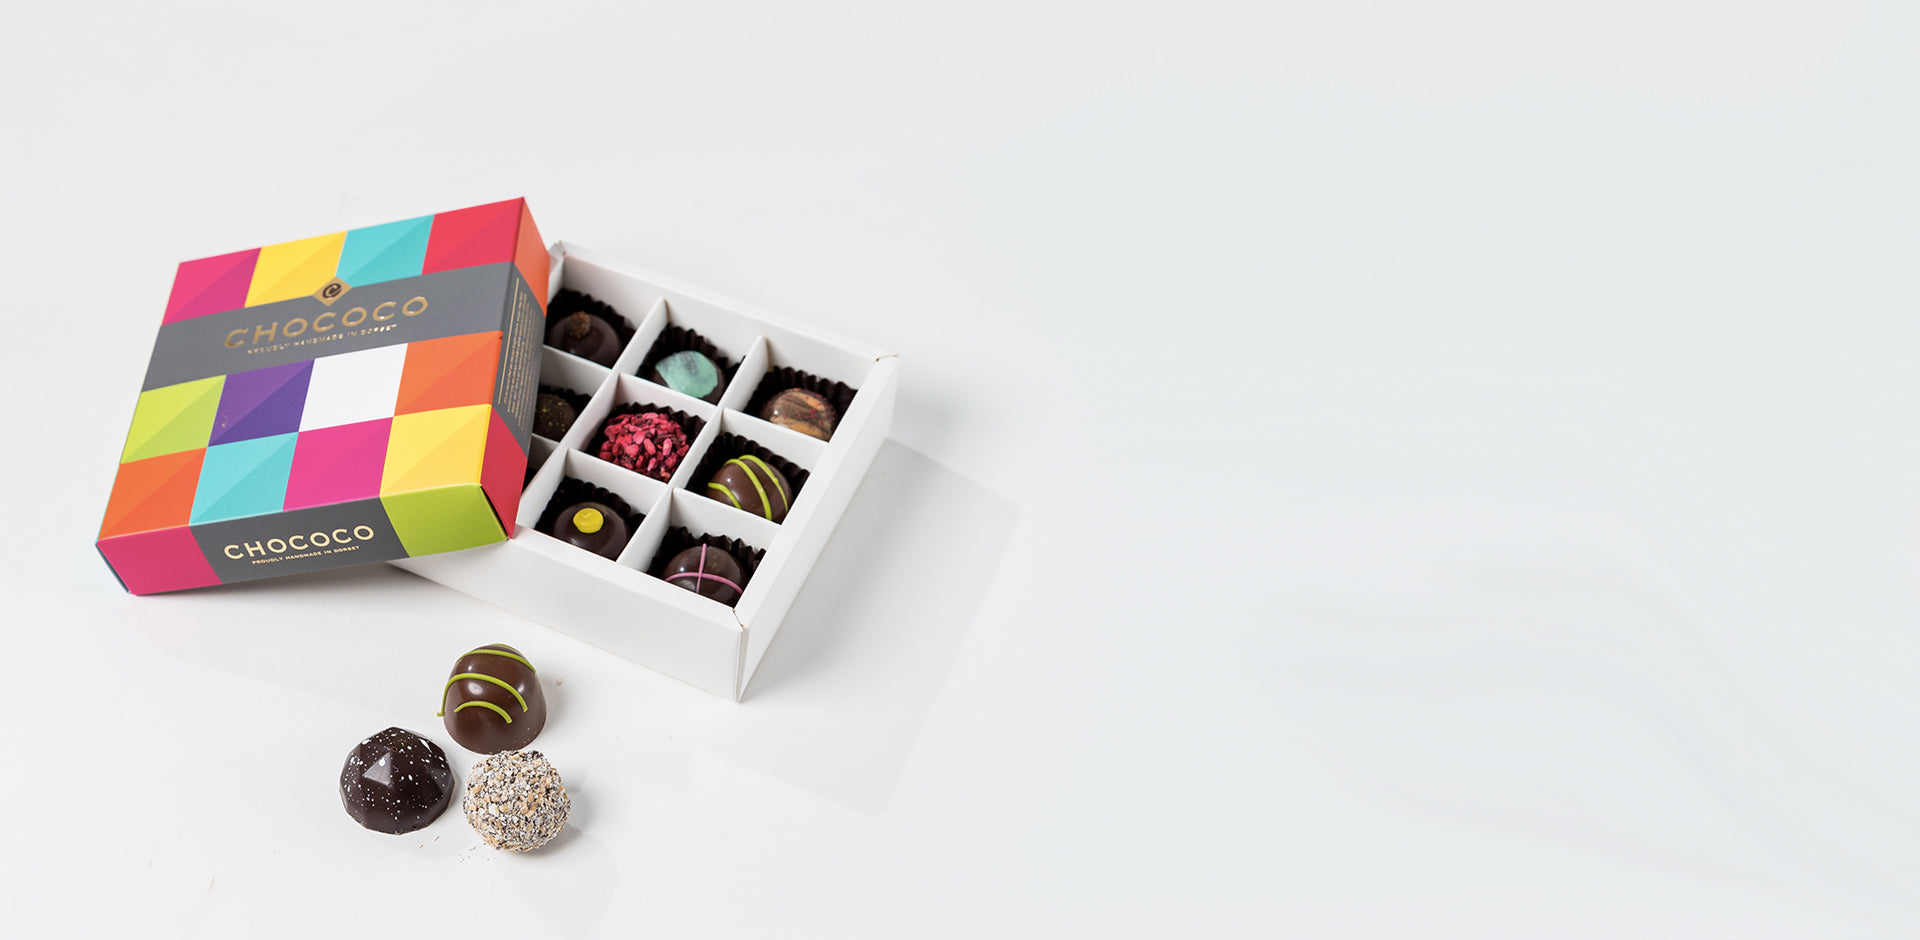 Photograph of a 9-piece Chococo selection box available to order from ChocoCake positioned to the left